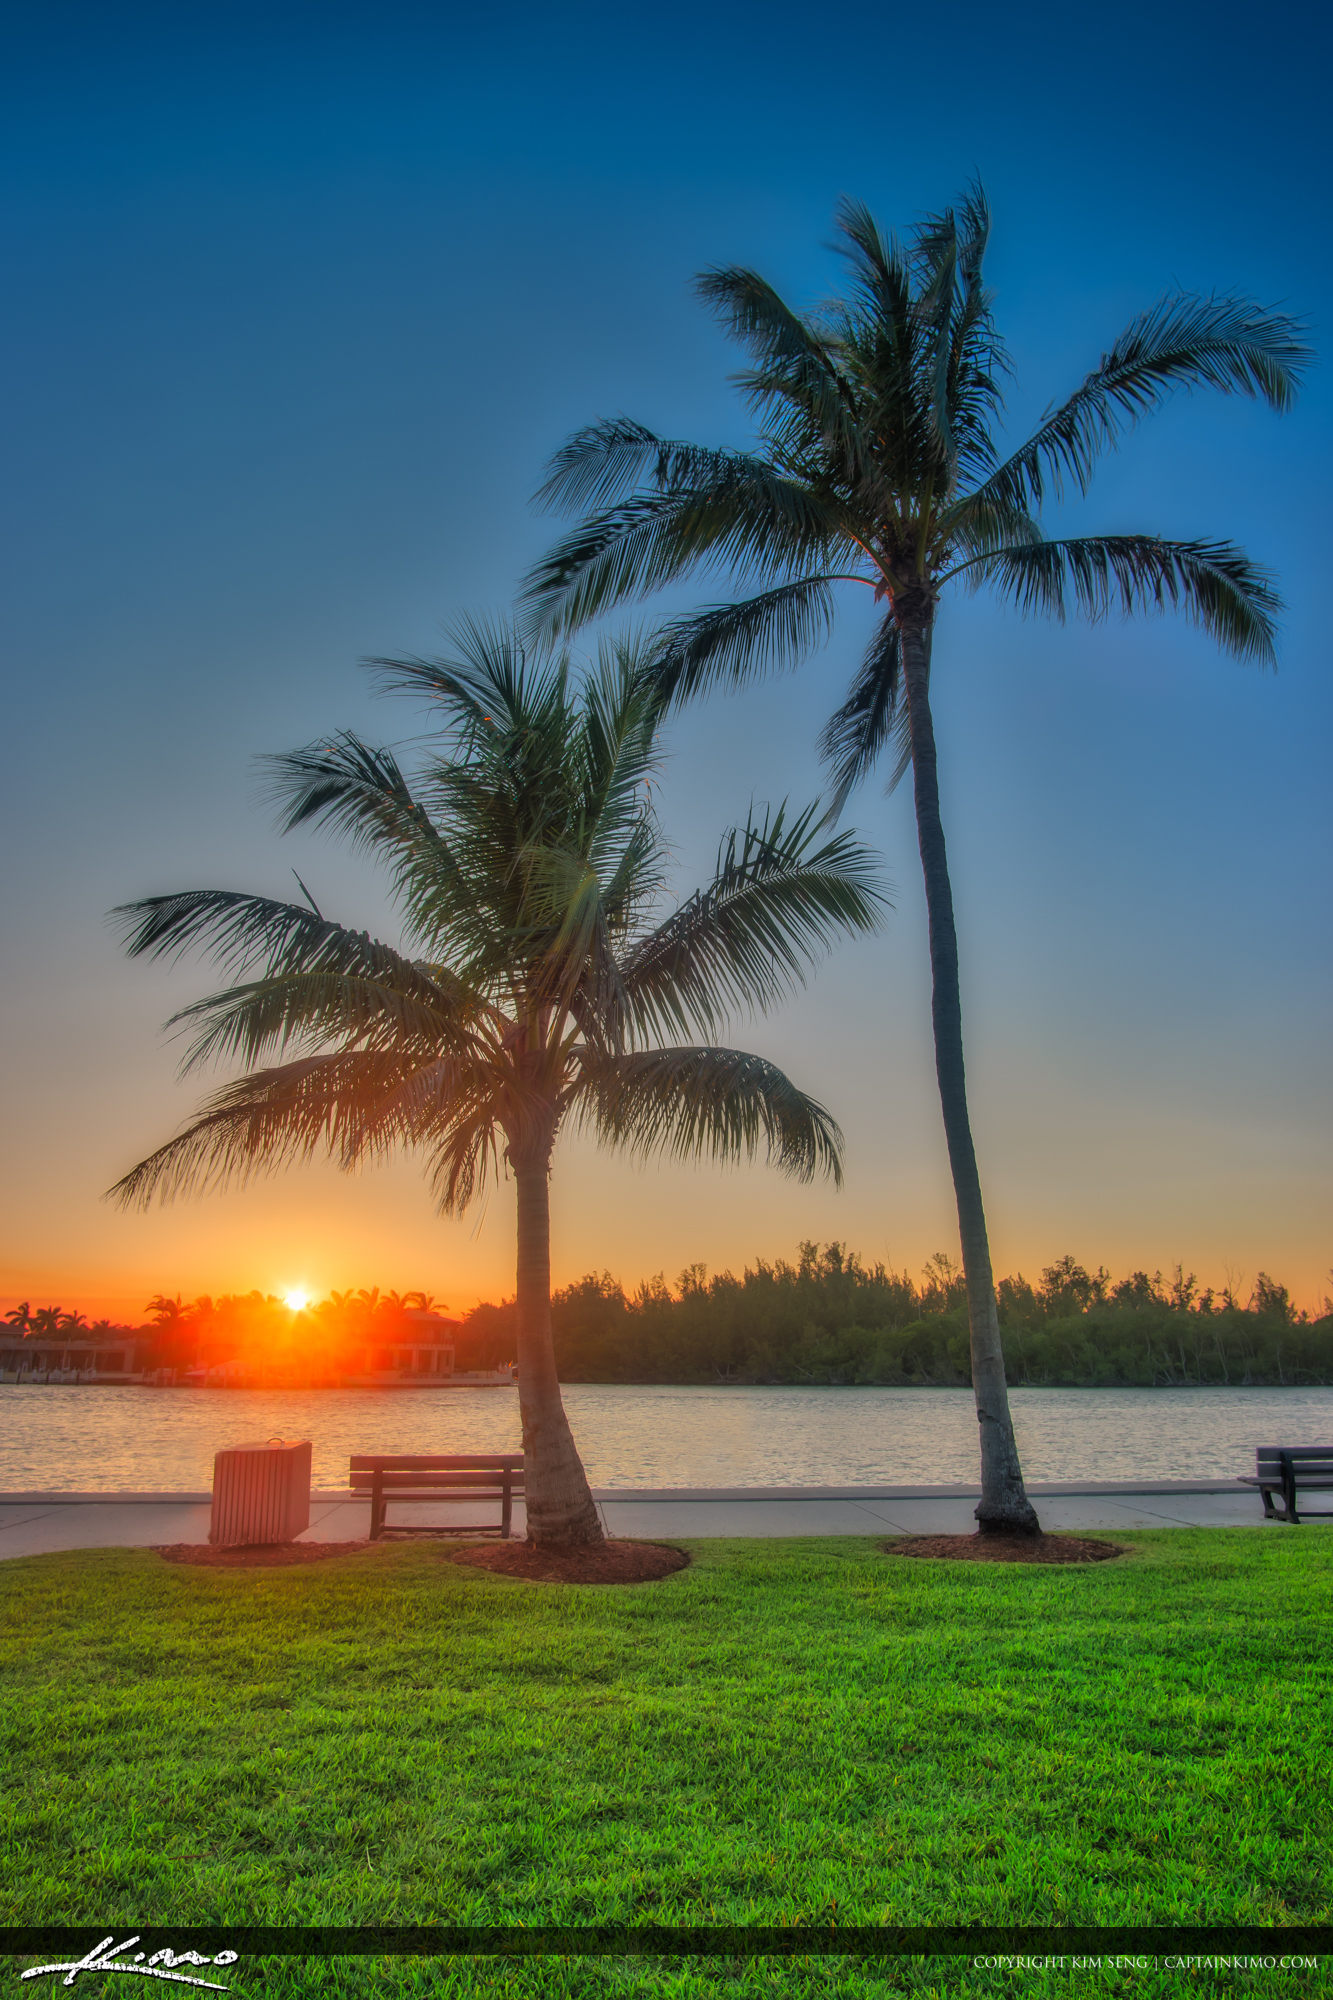 Sunset Red Reef Park Sunset Boca Raton Florida Coconut Trees